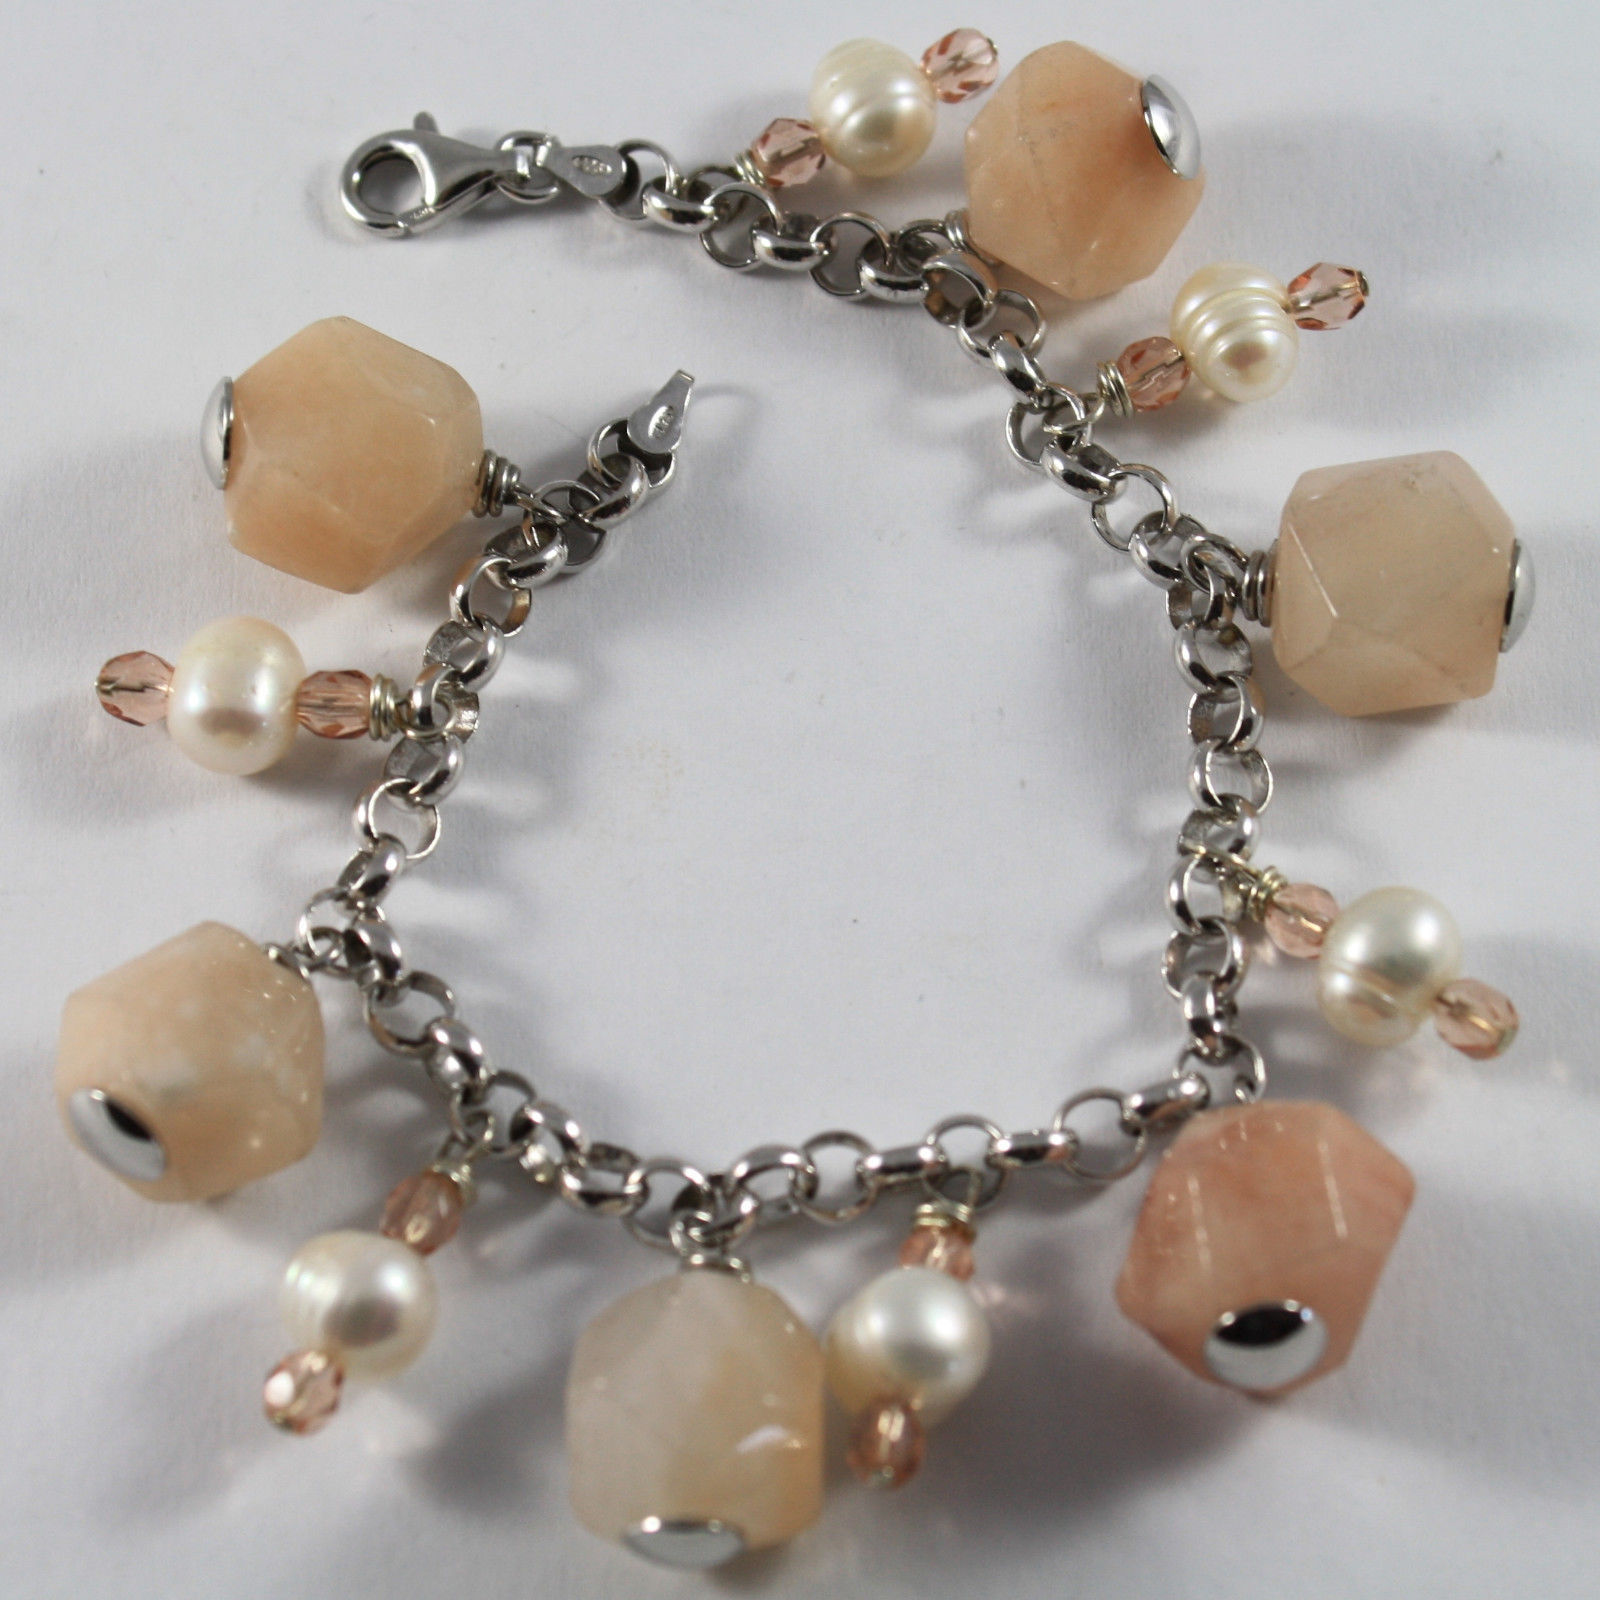 .925 RHODIUM SILVER BRACELET WITH PINK JADE, WHITE PEARLS AND ROSE CRISTAL